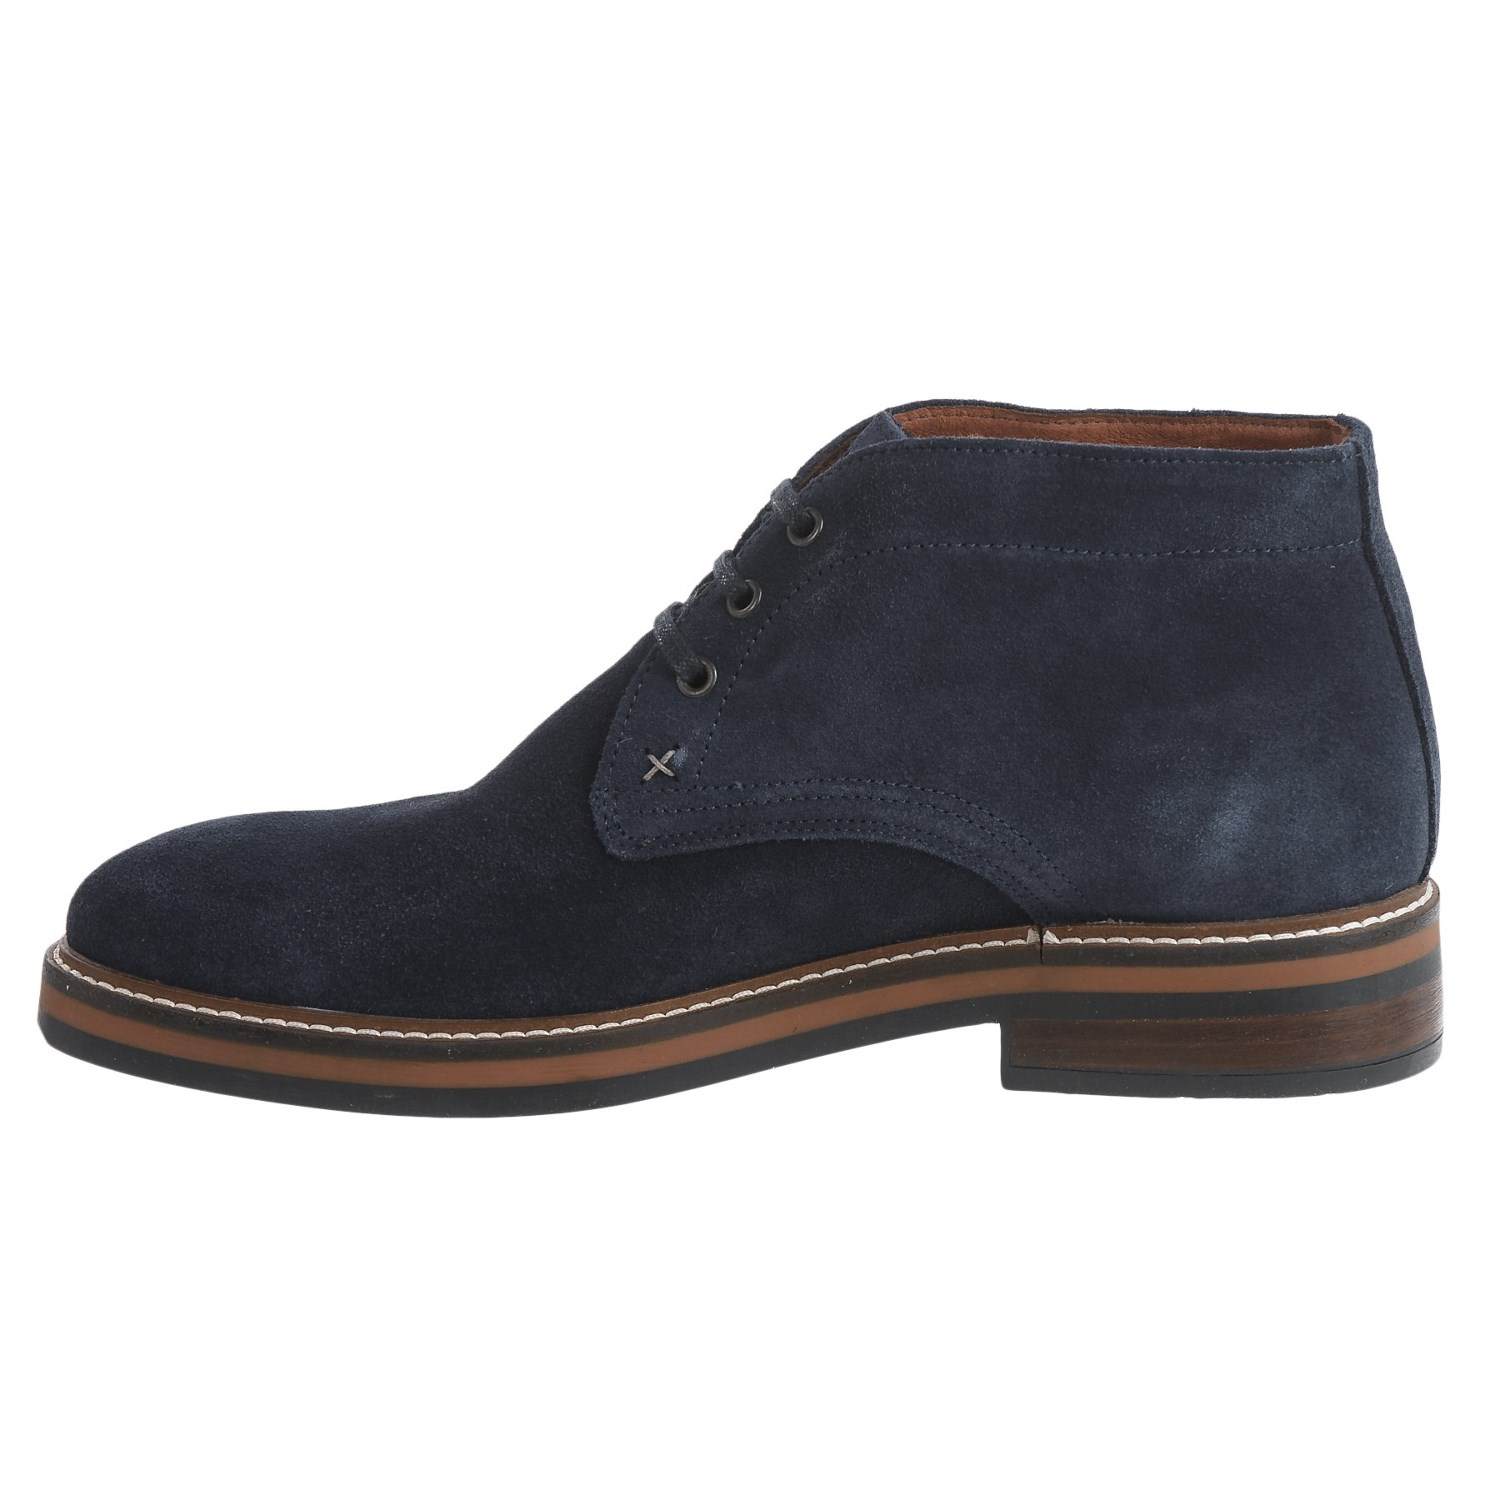 Wolverine No. 1883 Francisco Chukka Boots (For Men) - Save 55%